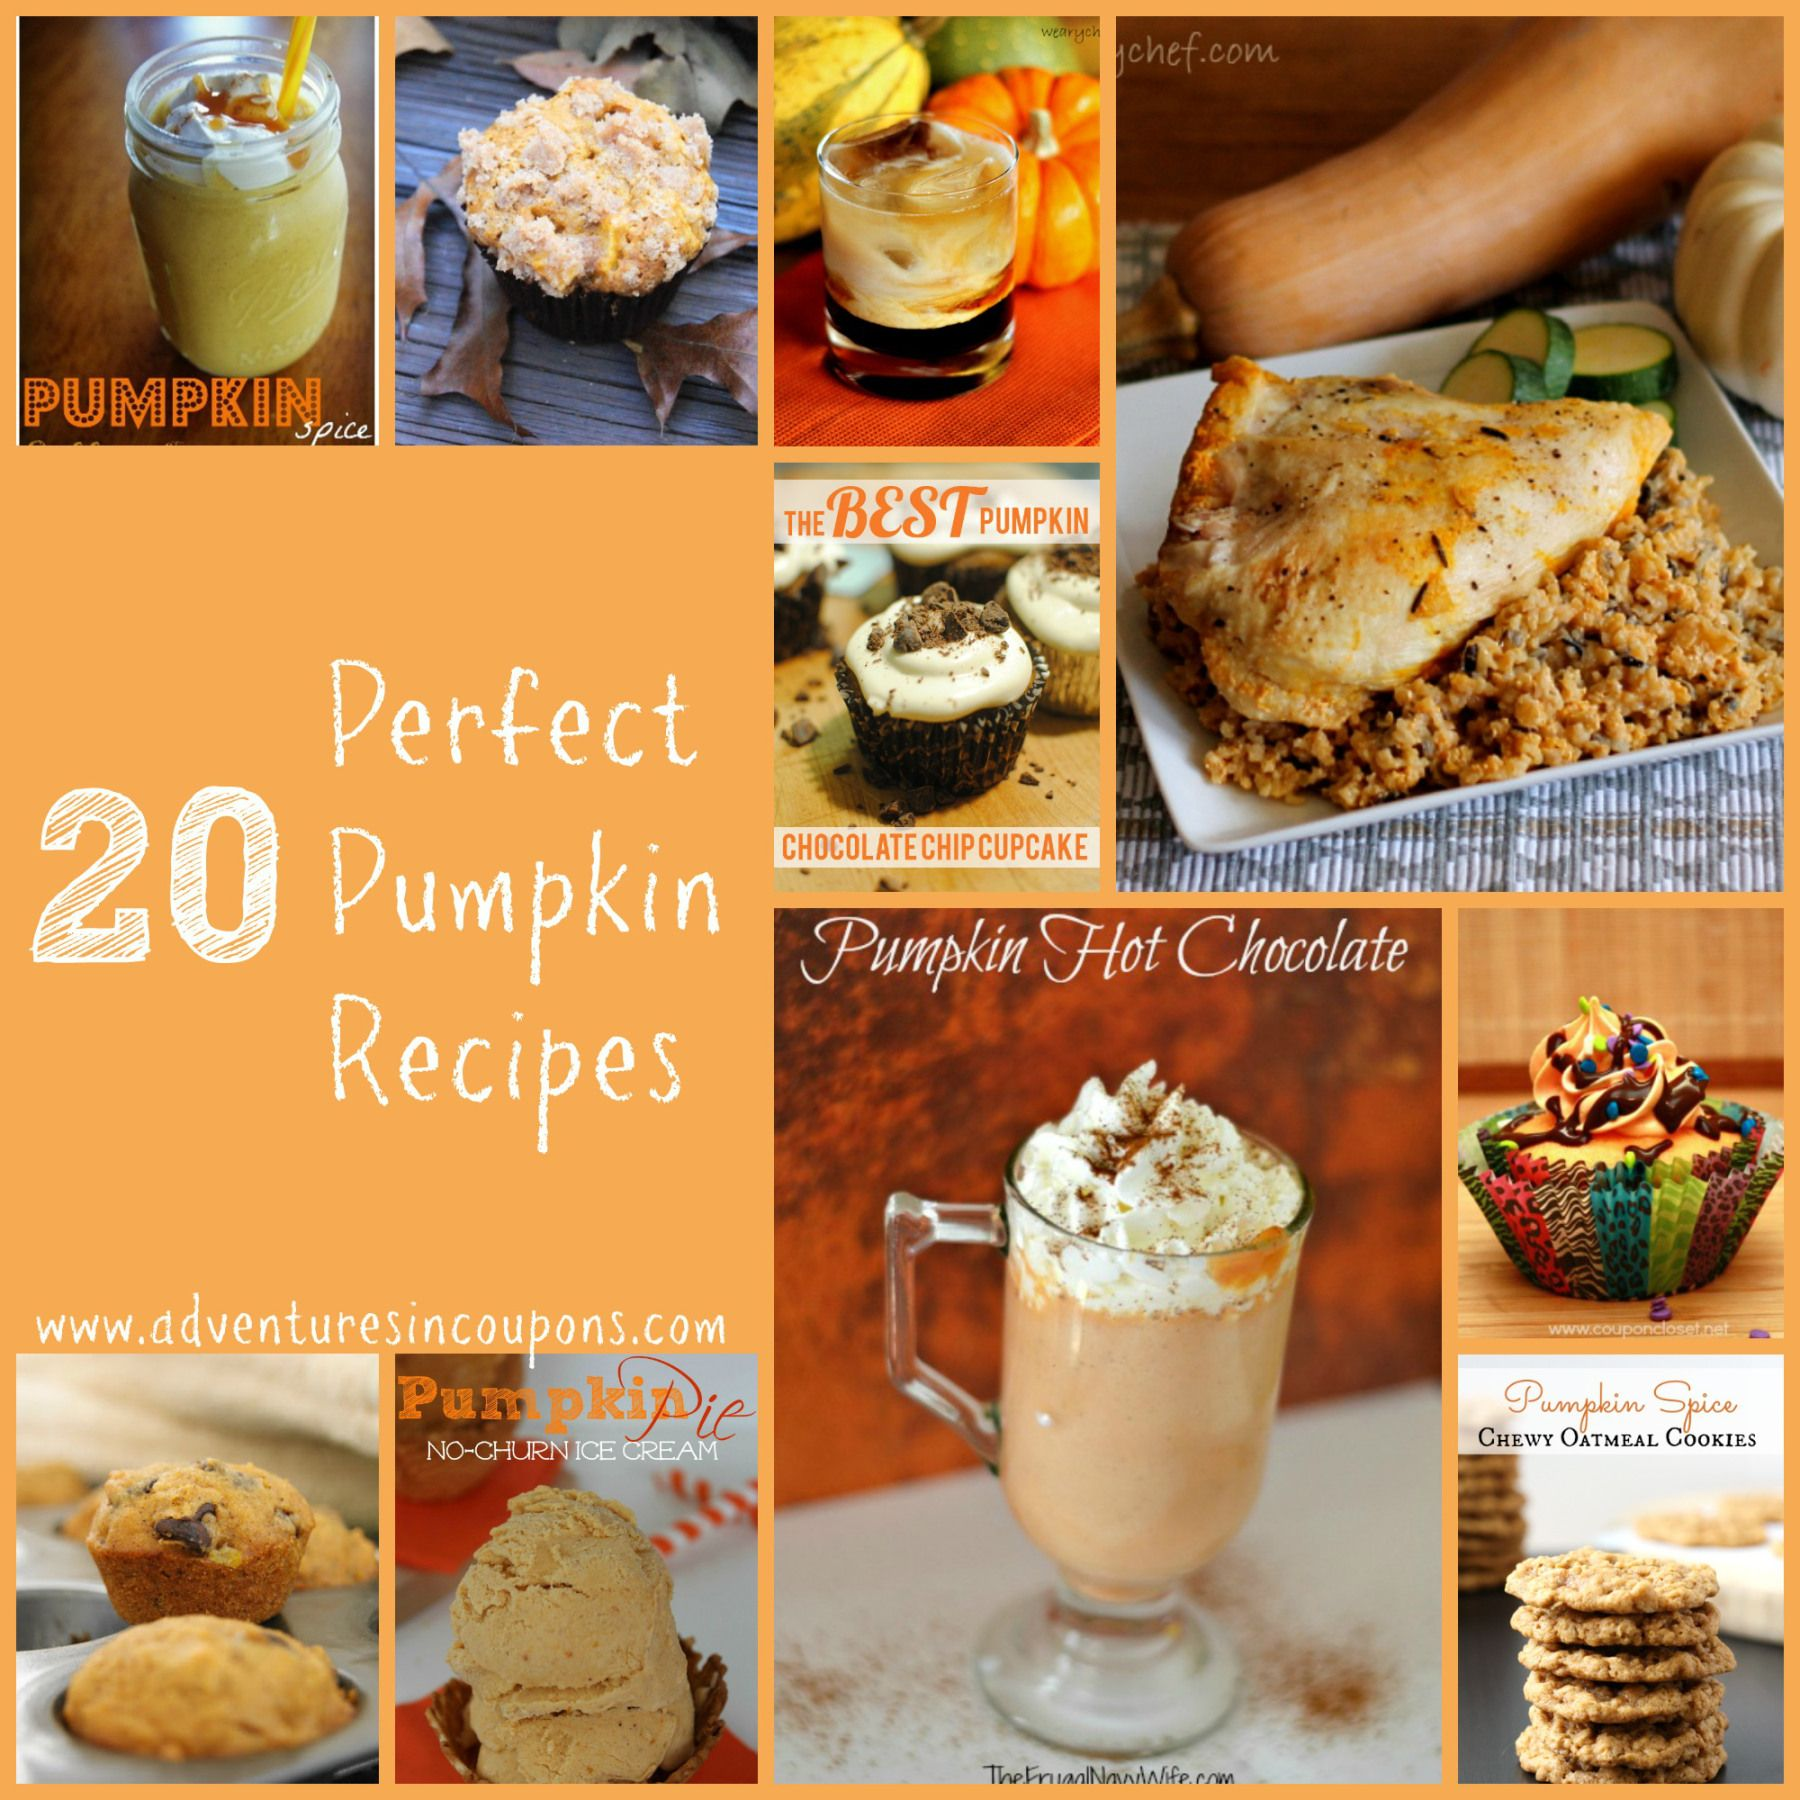 Pumpkin isn't just for pie and these recipes prove it!  Check out these 20 Perfect Pumpkin Recipes! They're perfect for any meal of the day!